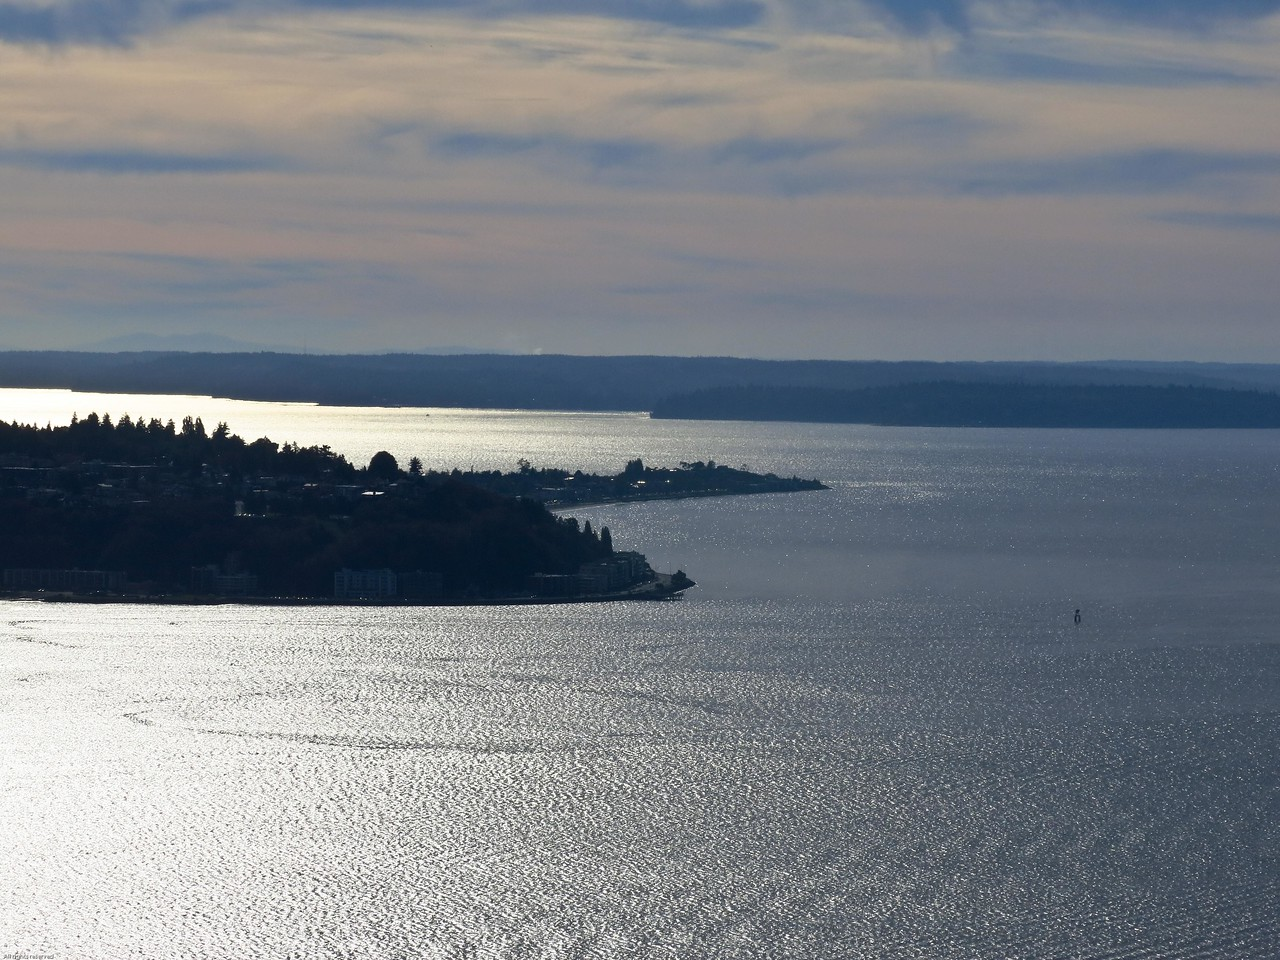 View from the Space Needle looking SSW:  West Seattle and Alki Point